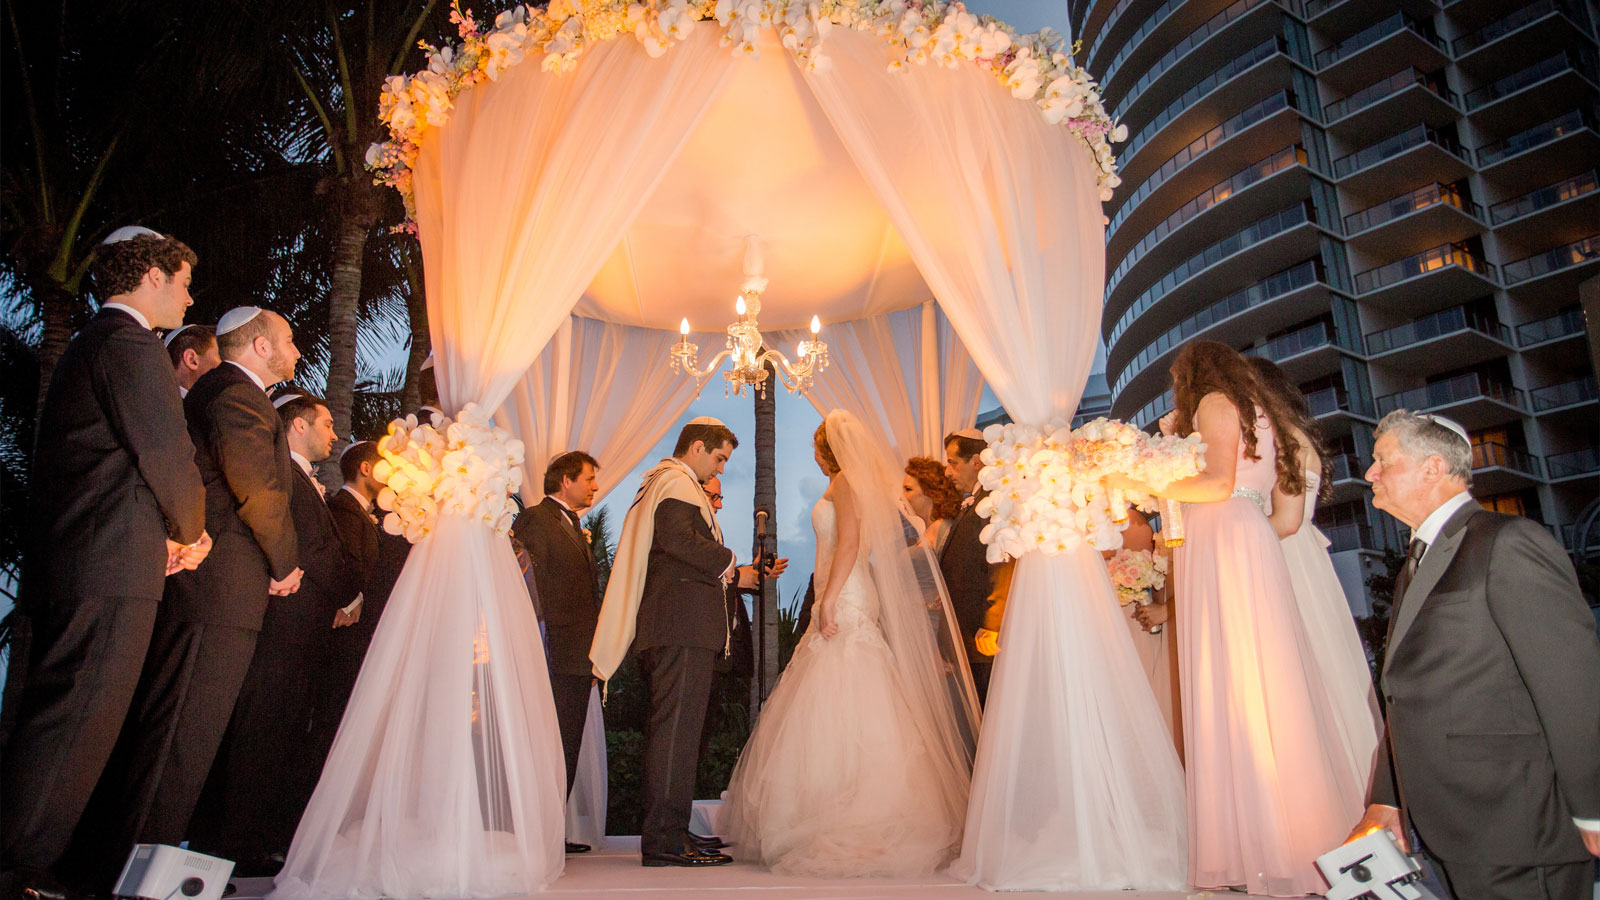 Wedding Venues in Miami The St Regis Bal Harbour Resort